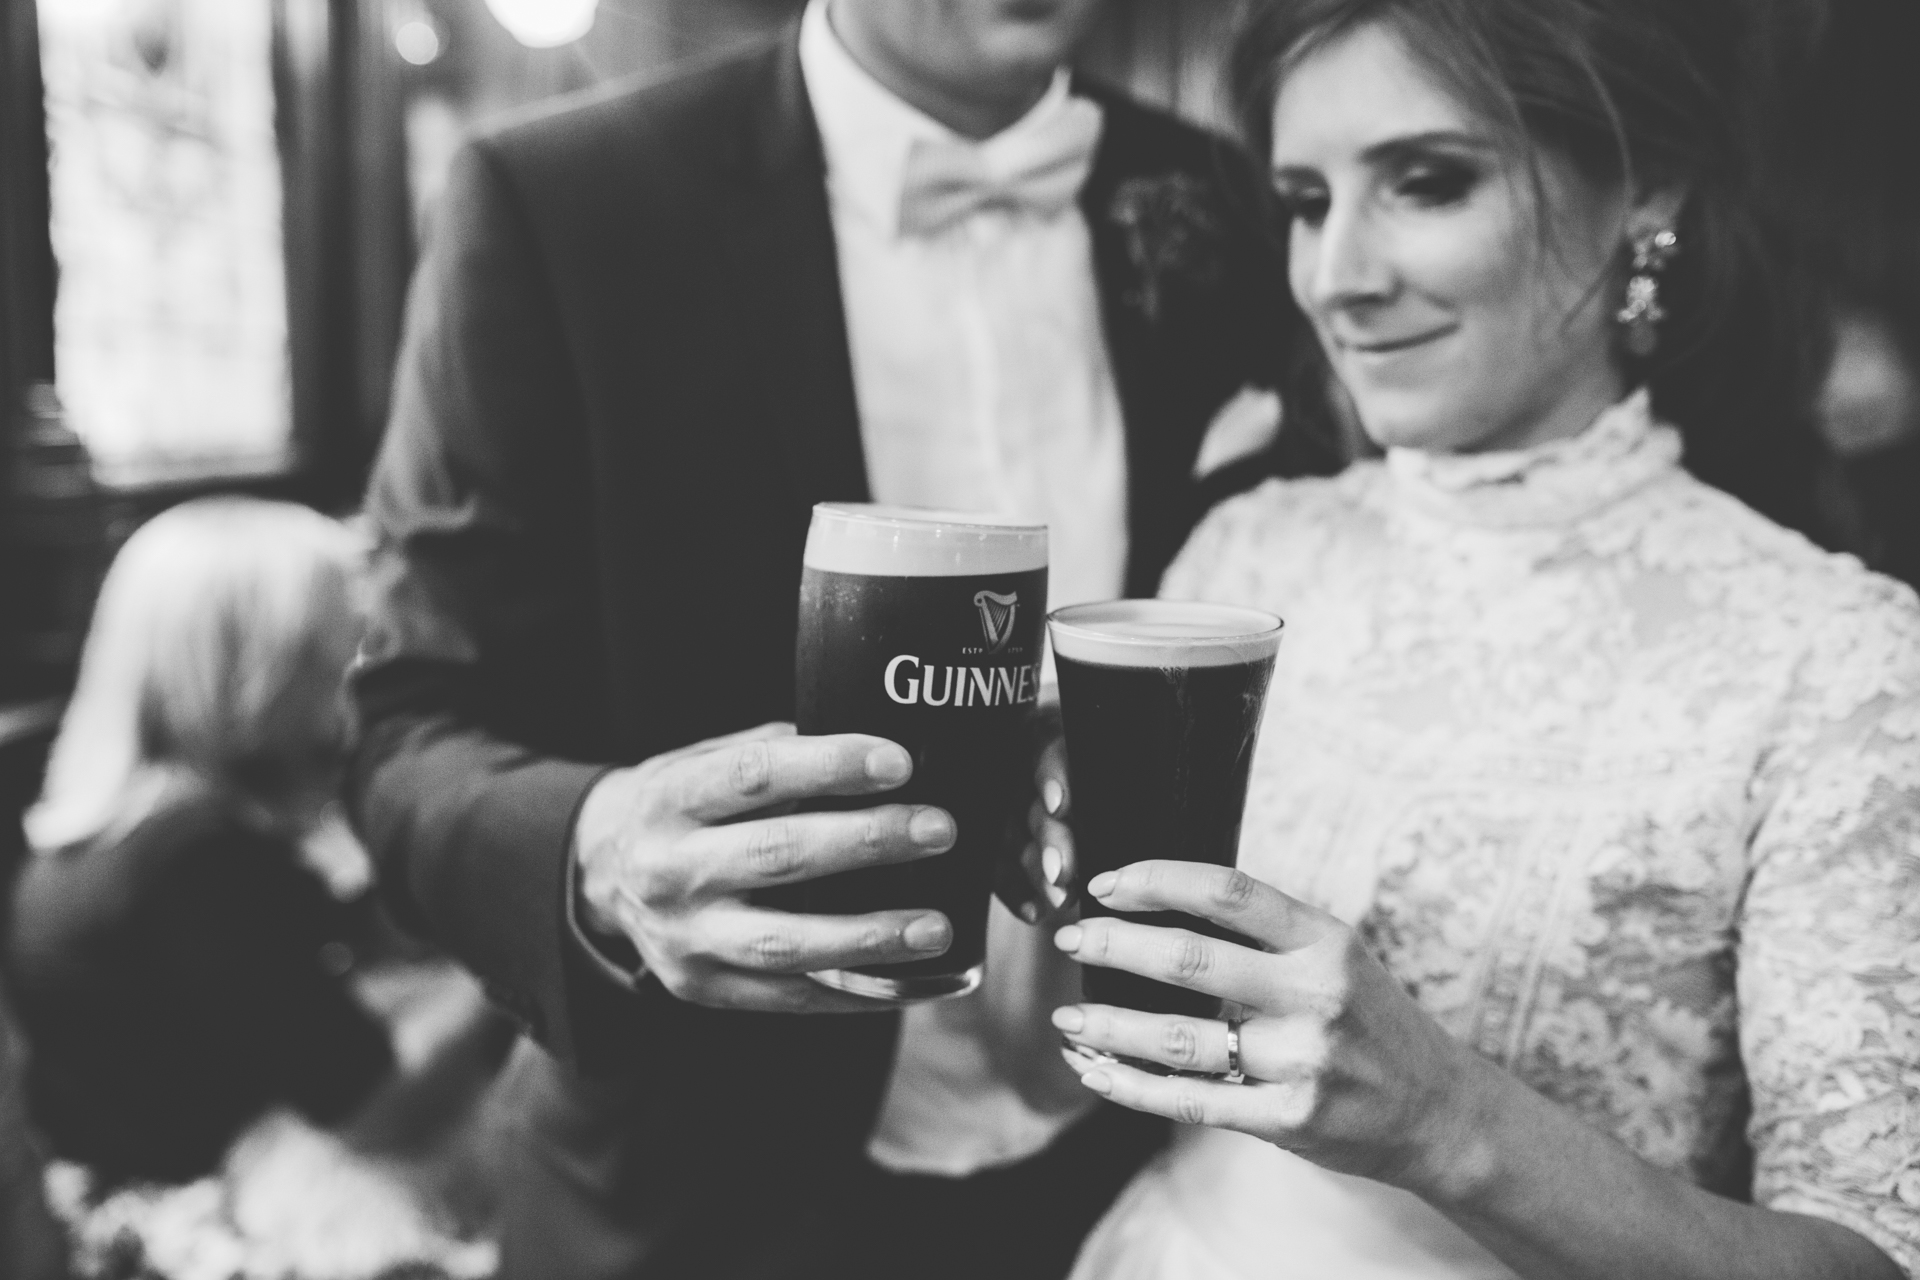 Dublin Wedding Photographer Graciela Vilagudin 00203.jpg